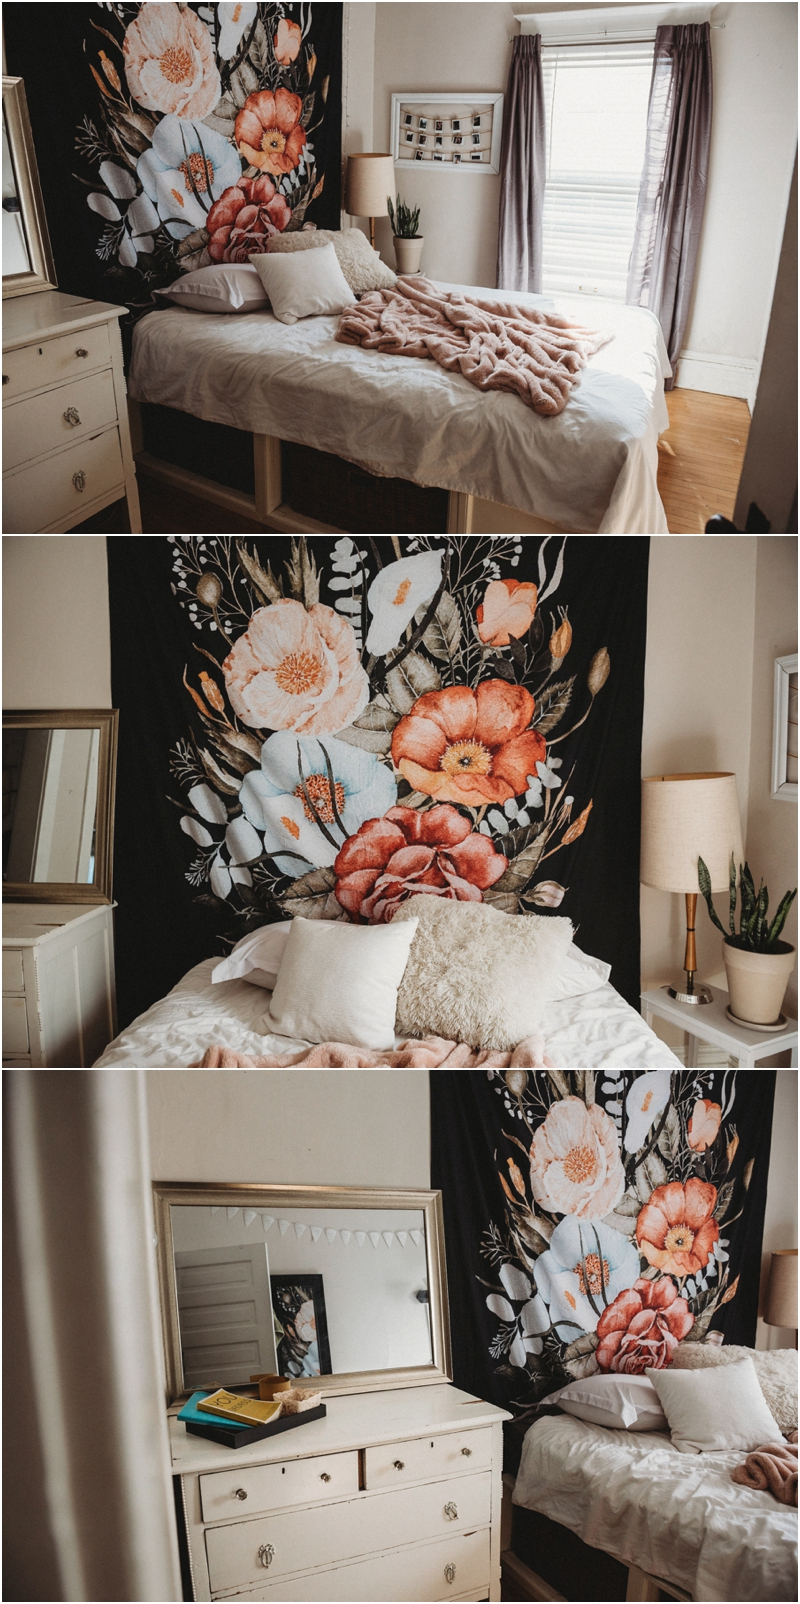 I will also continue using my own room for sessions (not as much, but it will give a nice variety to galleries!) So I figured I would show that too. I just got this awesome tapestry from society 6 and I can't wait to get a client in front of it!